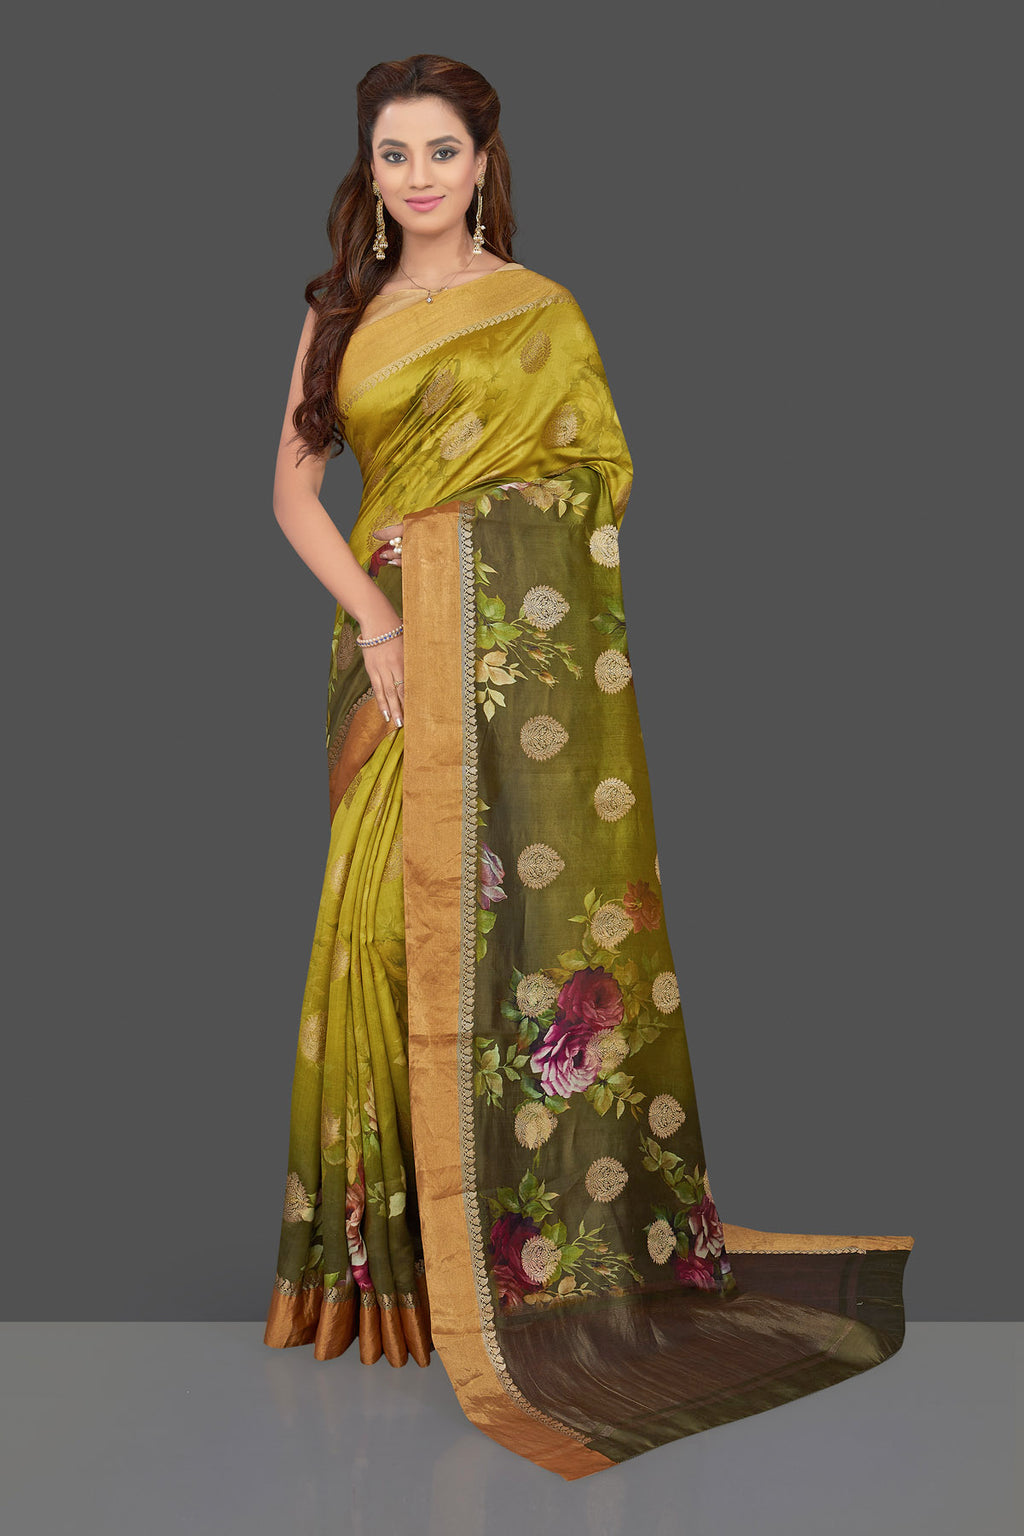 Buy stunning ombre green floral print muga silk saree online in USA with zari buta and zari border. Make you presence felt with your Indian style on special occasions in beautiful designer sarees, crepe sarees, muga silk saris, handwoven sarees from Pure Elegance Indian fashion store in USA.-full view